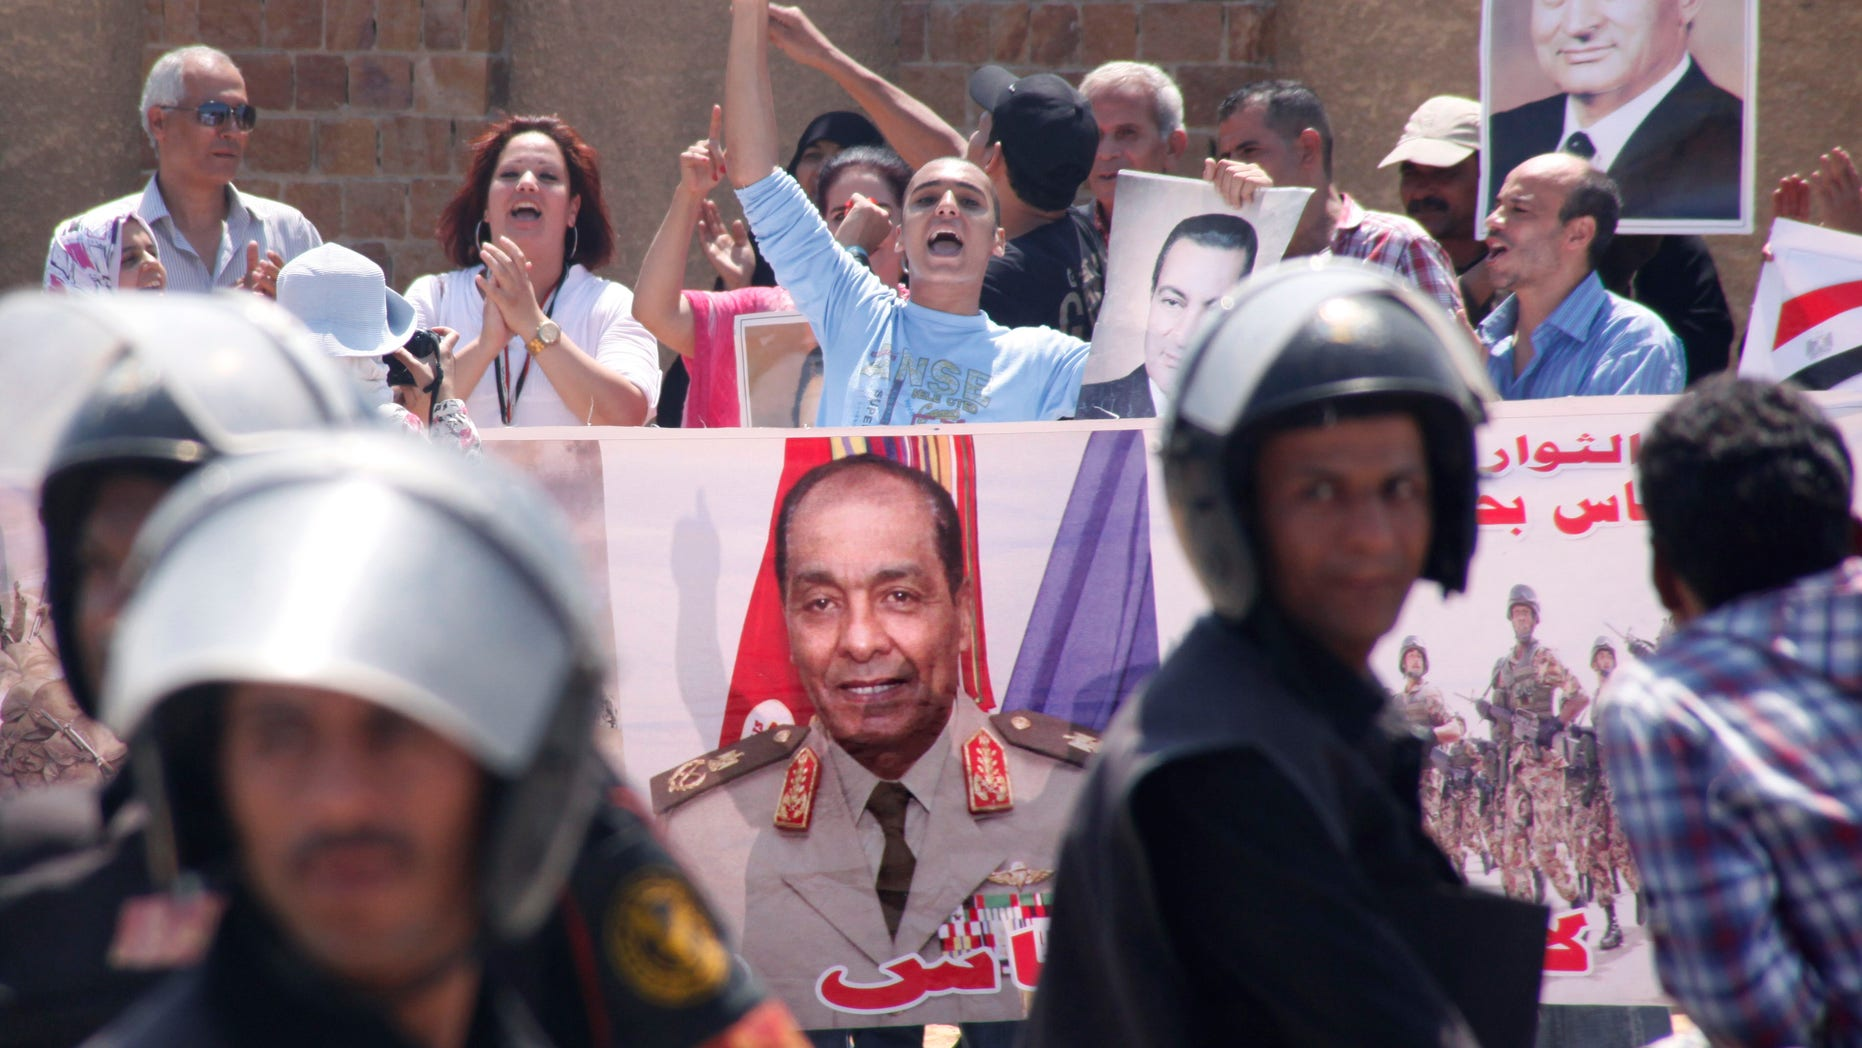 Egyptian pro-Mubarak supporters flash his posters and a giant poster showing field Marshal Mohammed Hussein Tantawi, at center, outside police academy court in Cairo, Egypt, Sunday, Sept.11, 2011 where Mubarak, his two sons Alaa and Gamal, his security chief Habib el-Adly and six top police officers face a session of trial, on charges they ordered the use of lethal force against protesters during Egypt's 18-day uprising killing 850 protesters were killed. Tantawi, Egypt's military ruler Tantawi and one-time confidant of Hosni Mubarak, has failed to attend a court session in which he was expected to offer highly anticipated testimony about the former president's alleged role in the death of protesters.